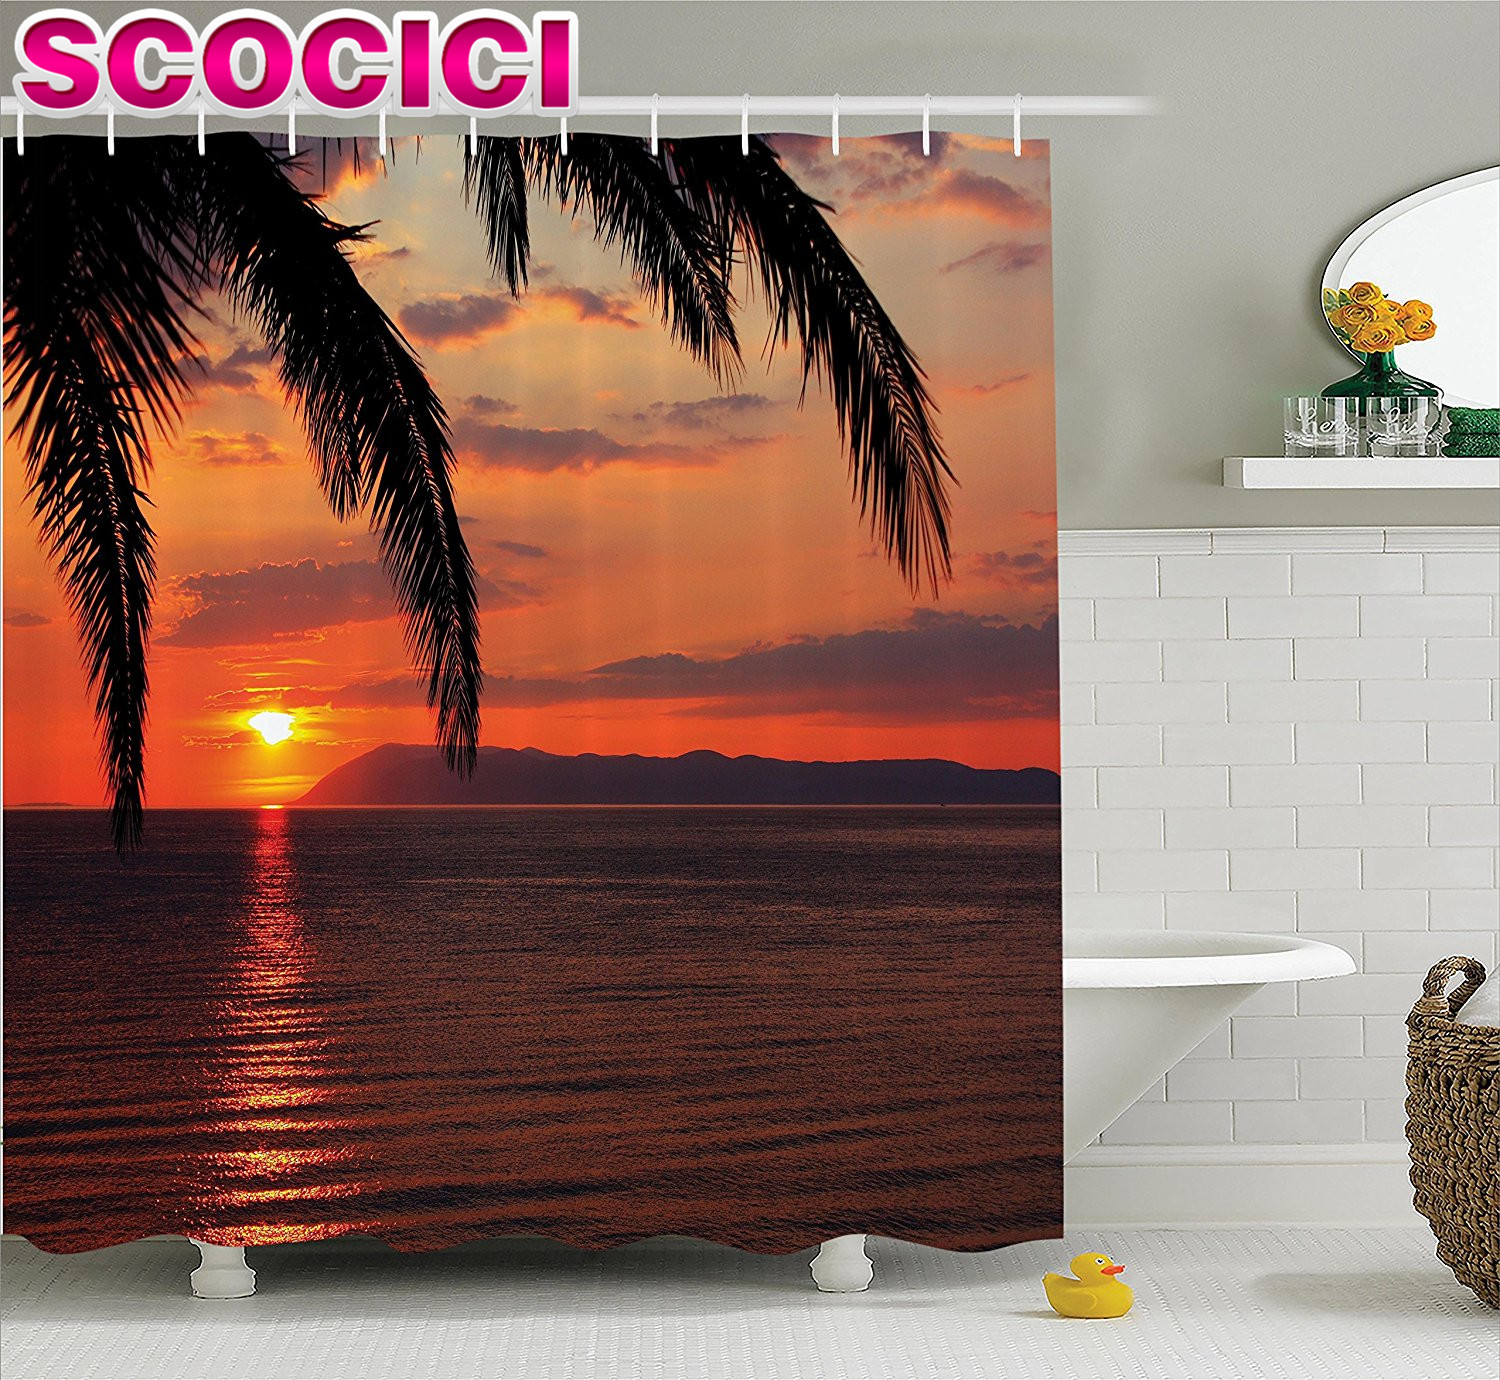 Tropical Decor Shower Curtain Set Sunrise On The Sea Palm Trees Exotic Holiday Honeymoon Romantic Beach